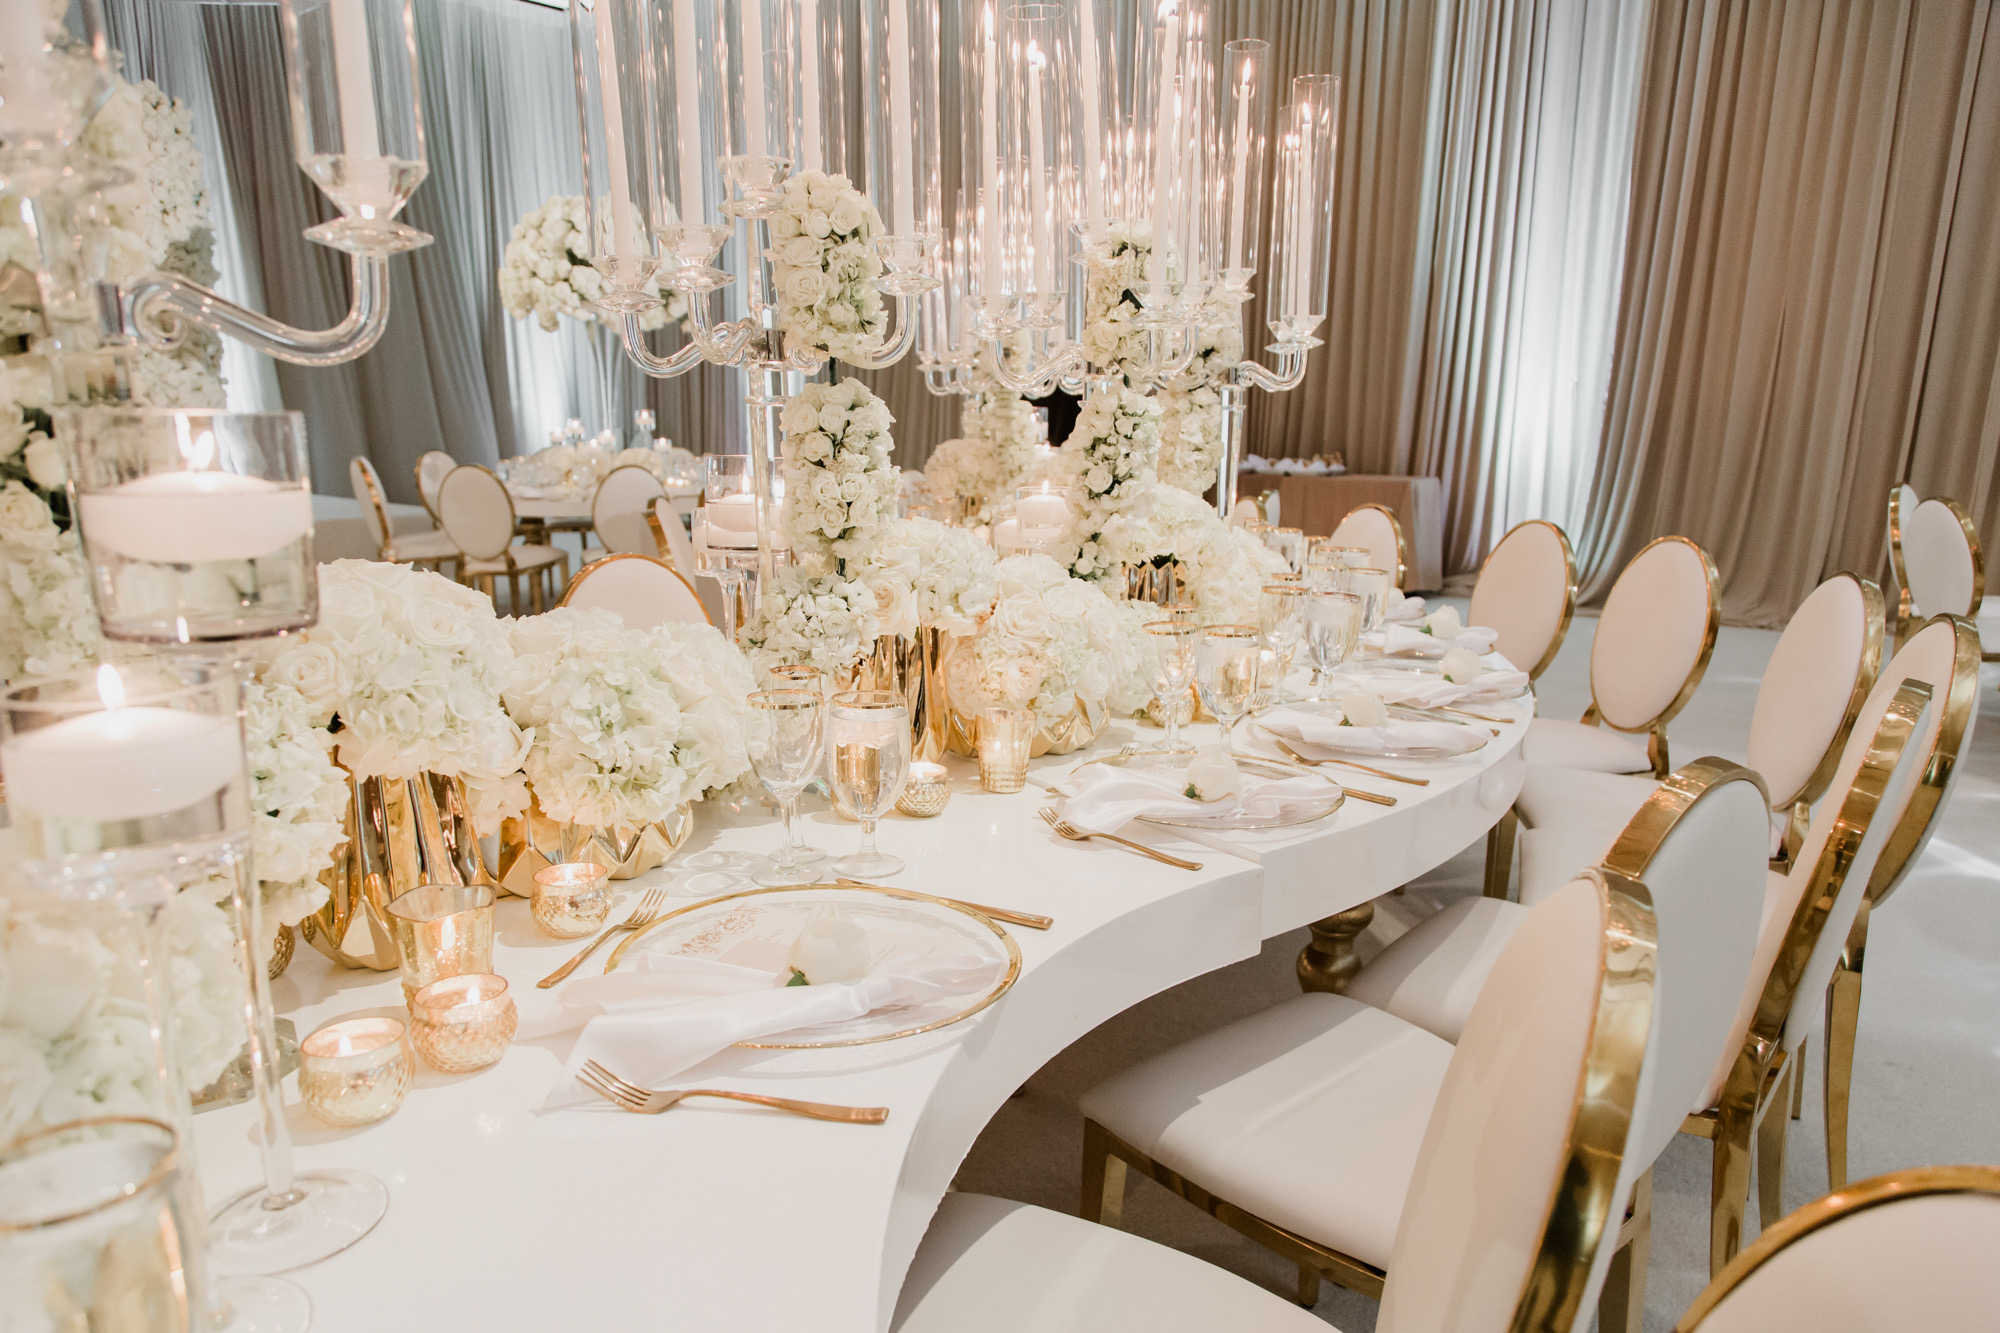 DESIGN TIP:  Curved serpentine tables fees fresh and whimsical, while the stark white makes the shape a stand out in the room.  The circular gold rimmed chargers anchor the table and give it a sense of tradition.  Las Vegas Wedding Planner Andrea Eppolito. Image by Adam Frazier.